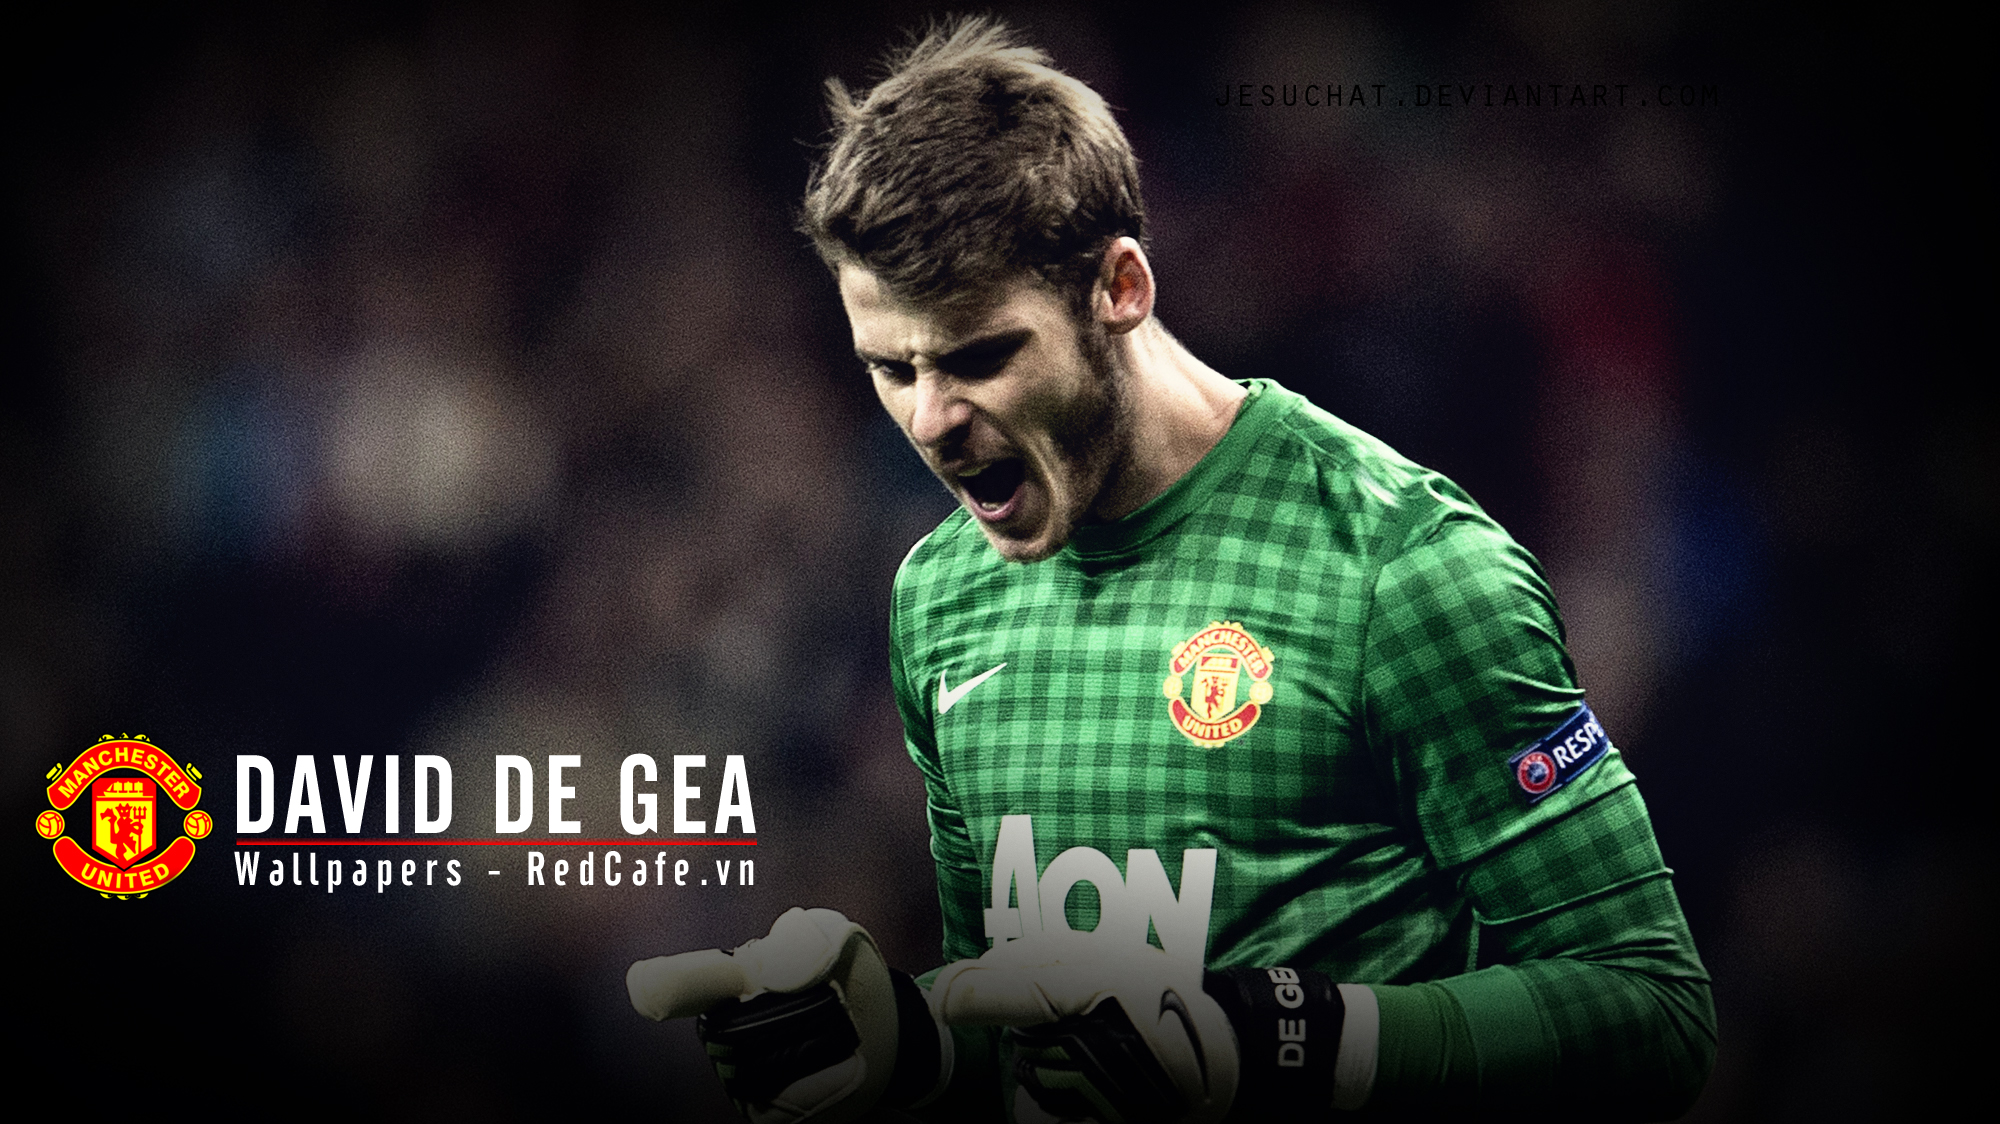 David De Gea Wallpapers By Jesuchat On DeviantArt